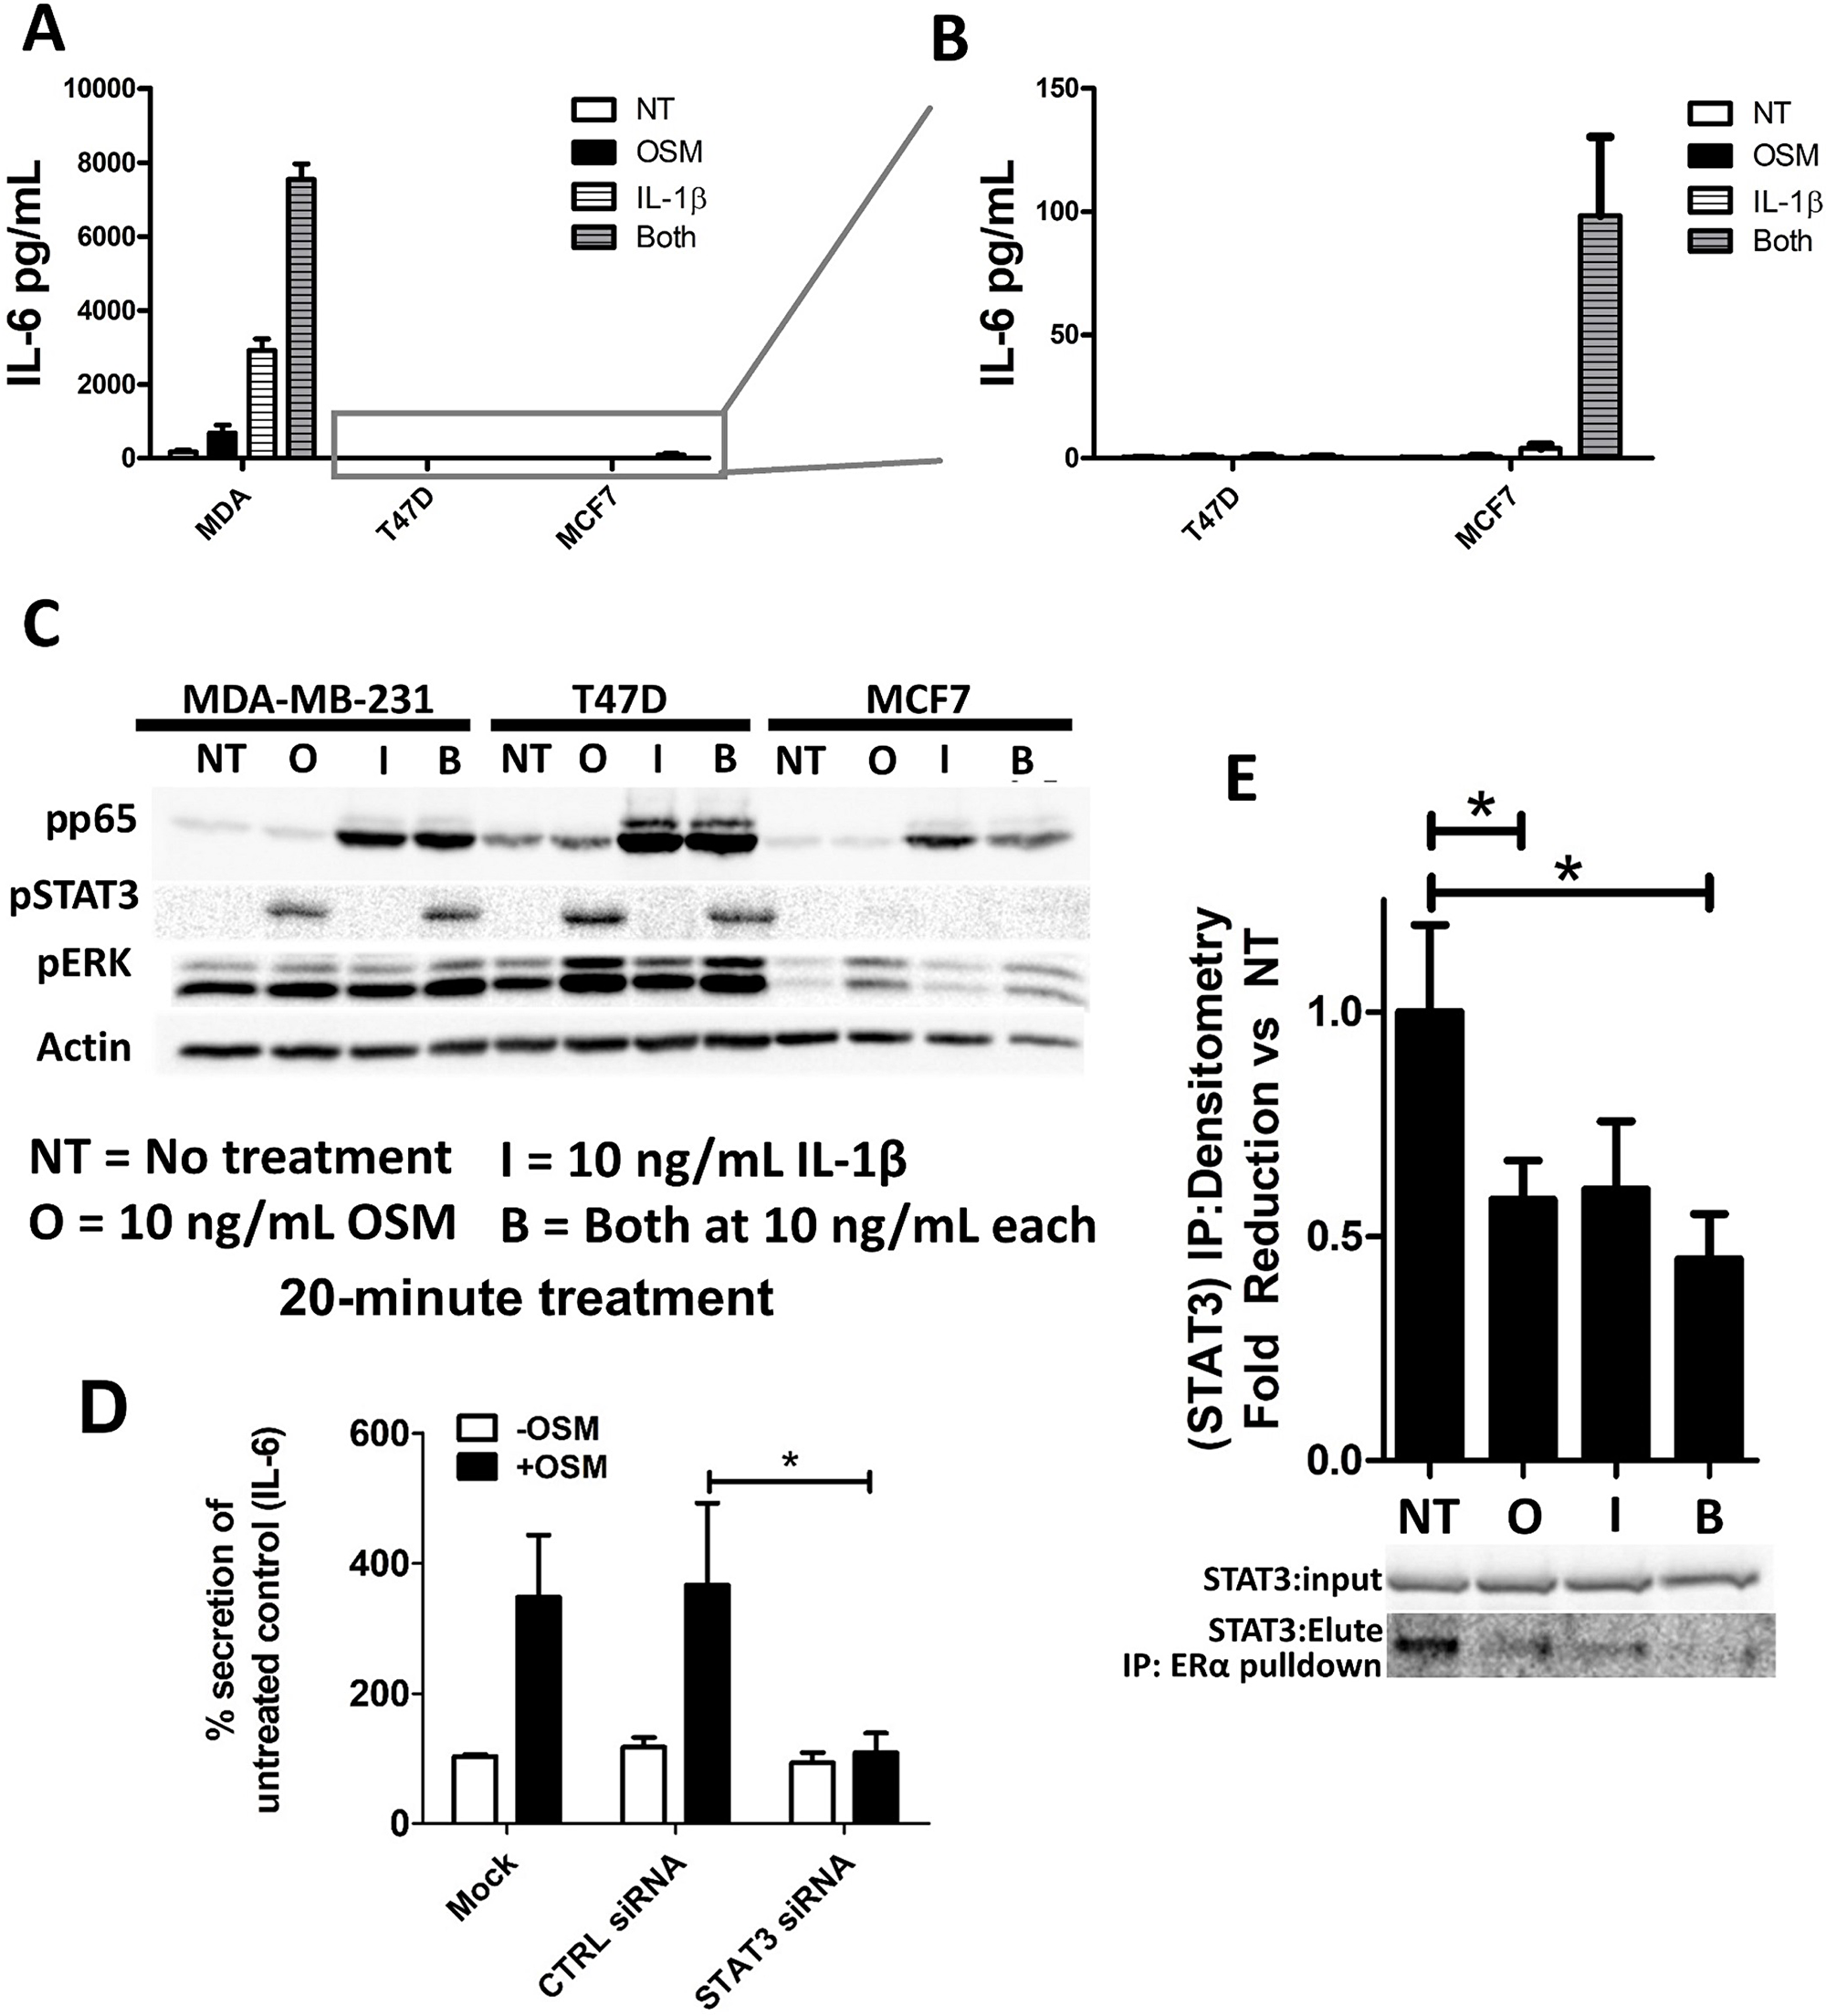 OSM and IL-1β activate separate signaling pathways and synergistically induce IL-6 secretion.